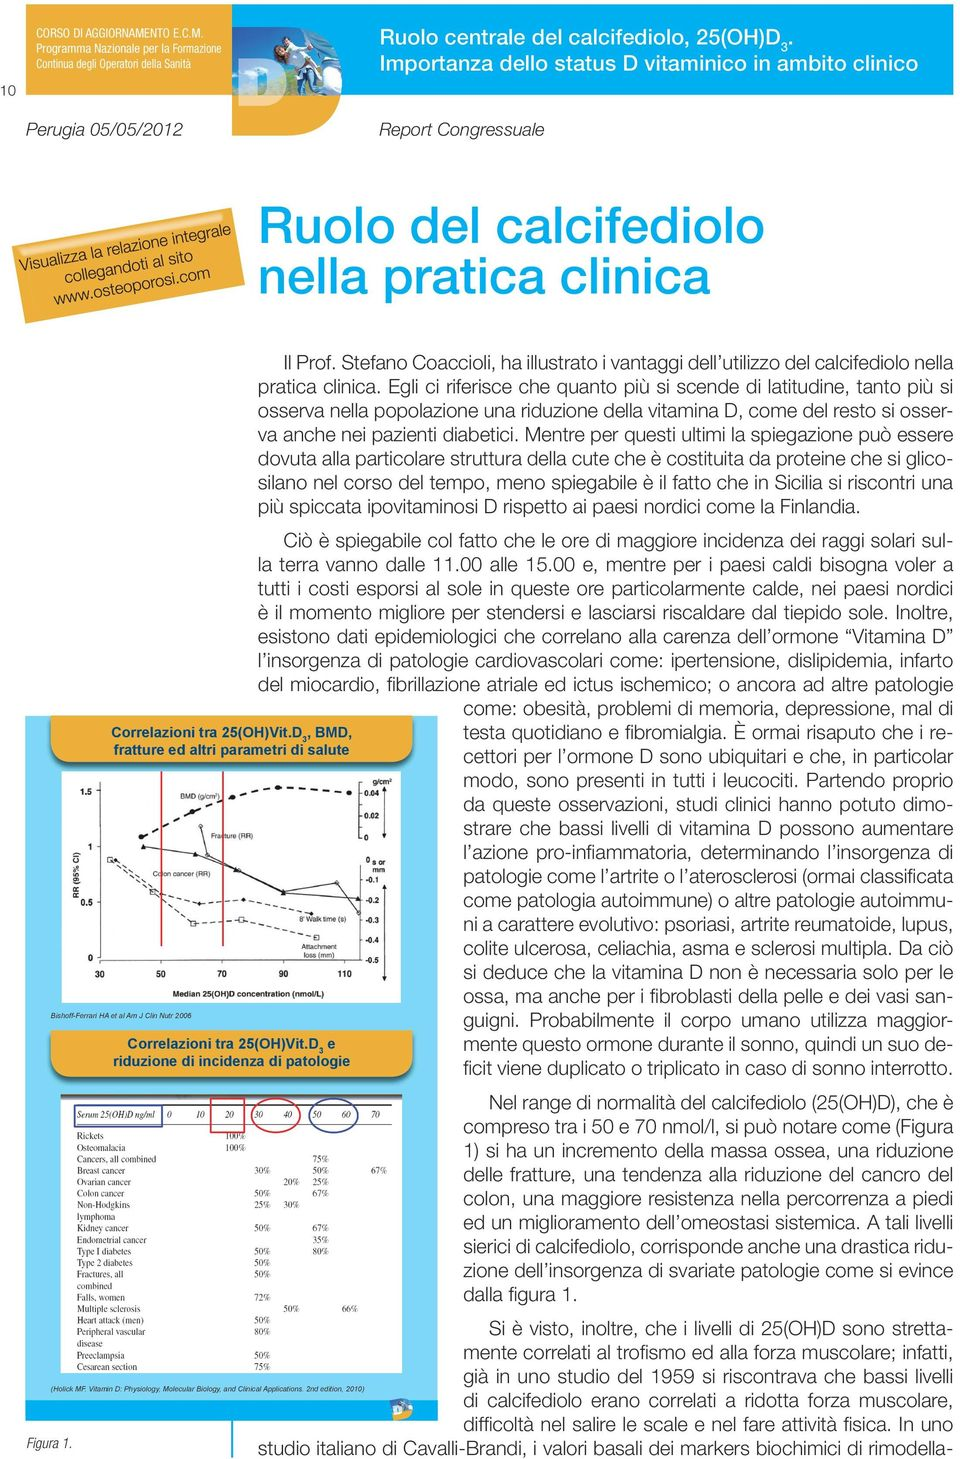 Correlazioni tra 25(OH)Vit e riduzione di incidenza di patologie (Holick MF Vitamin D: Physiology, Molecular Biology, and Clinical Applications 2nd edition, 2010) Il Prof Stefano Coaccioli, ha